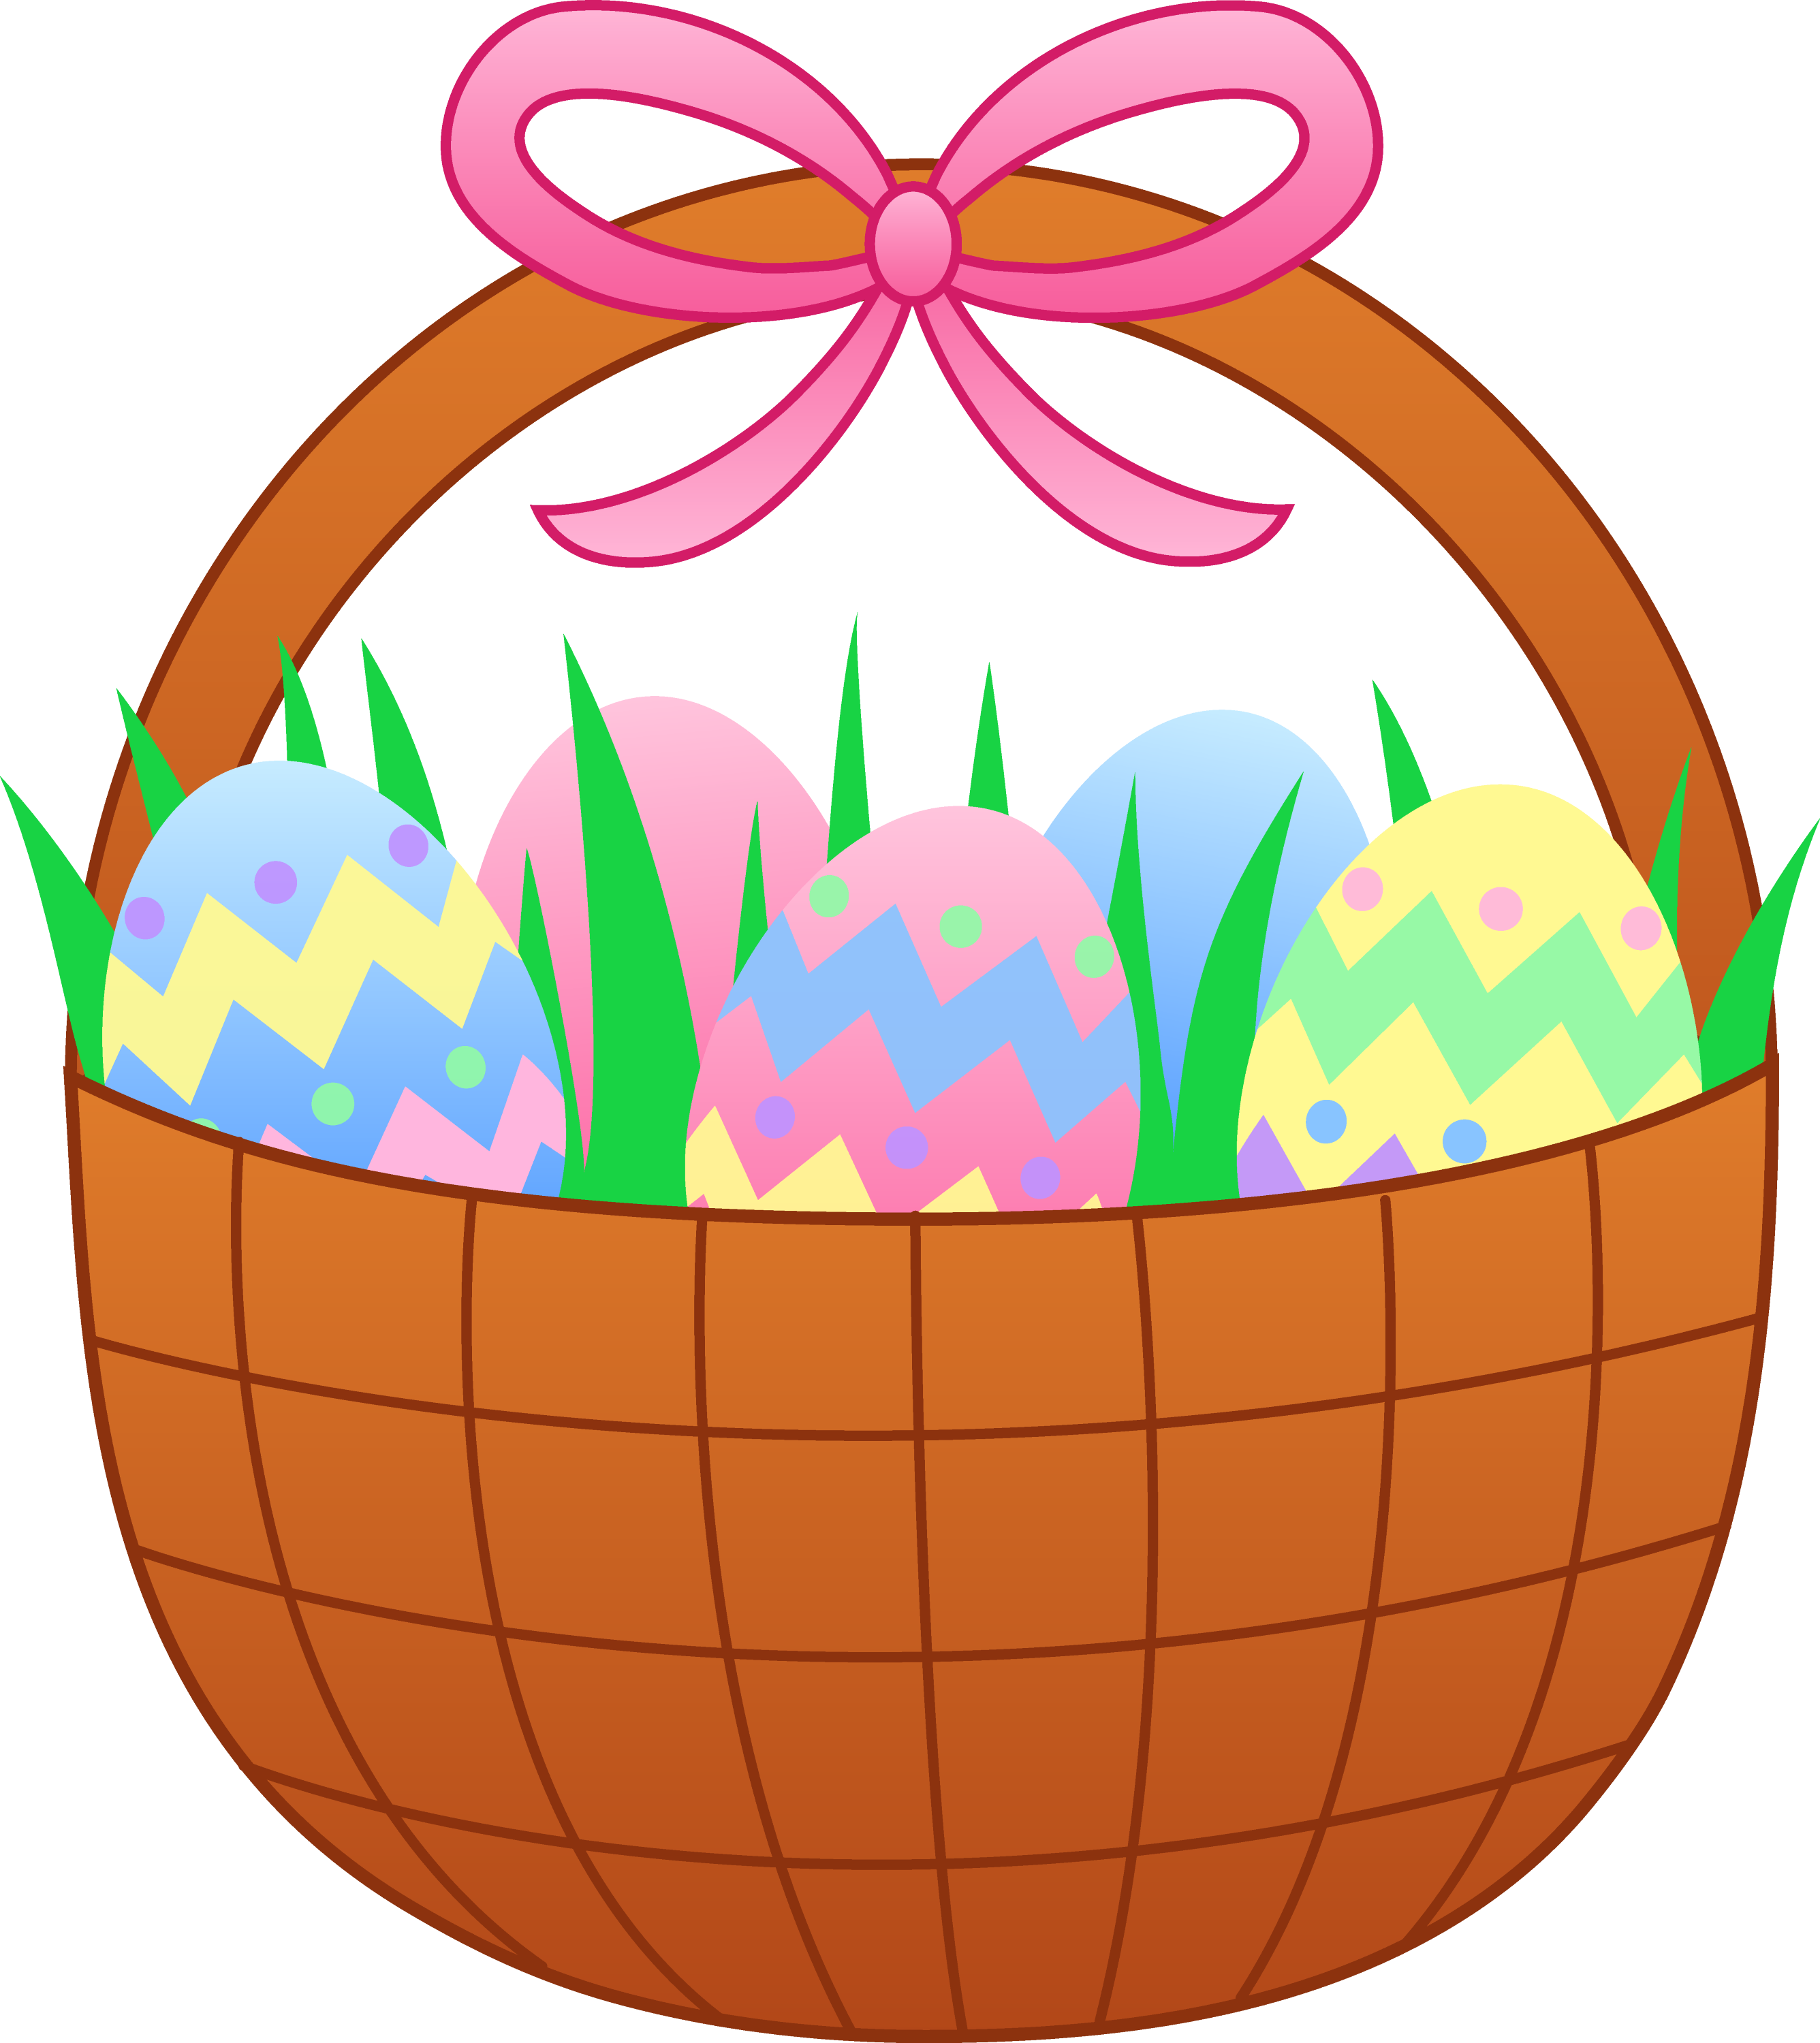 clip art for easter baskets - photo #14